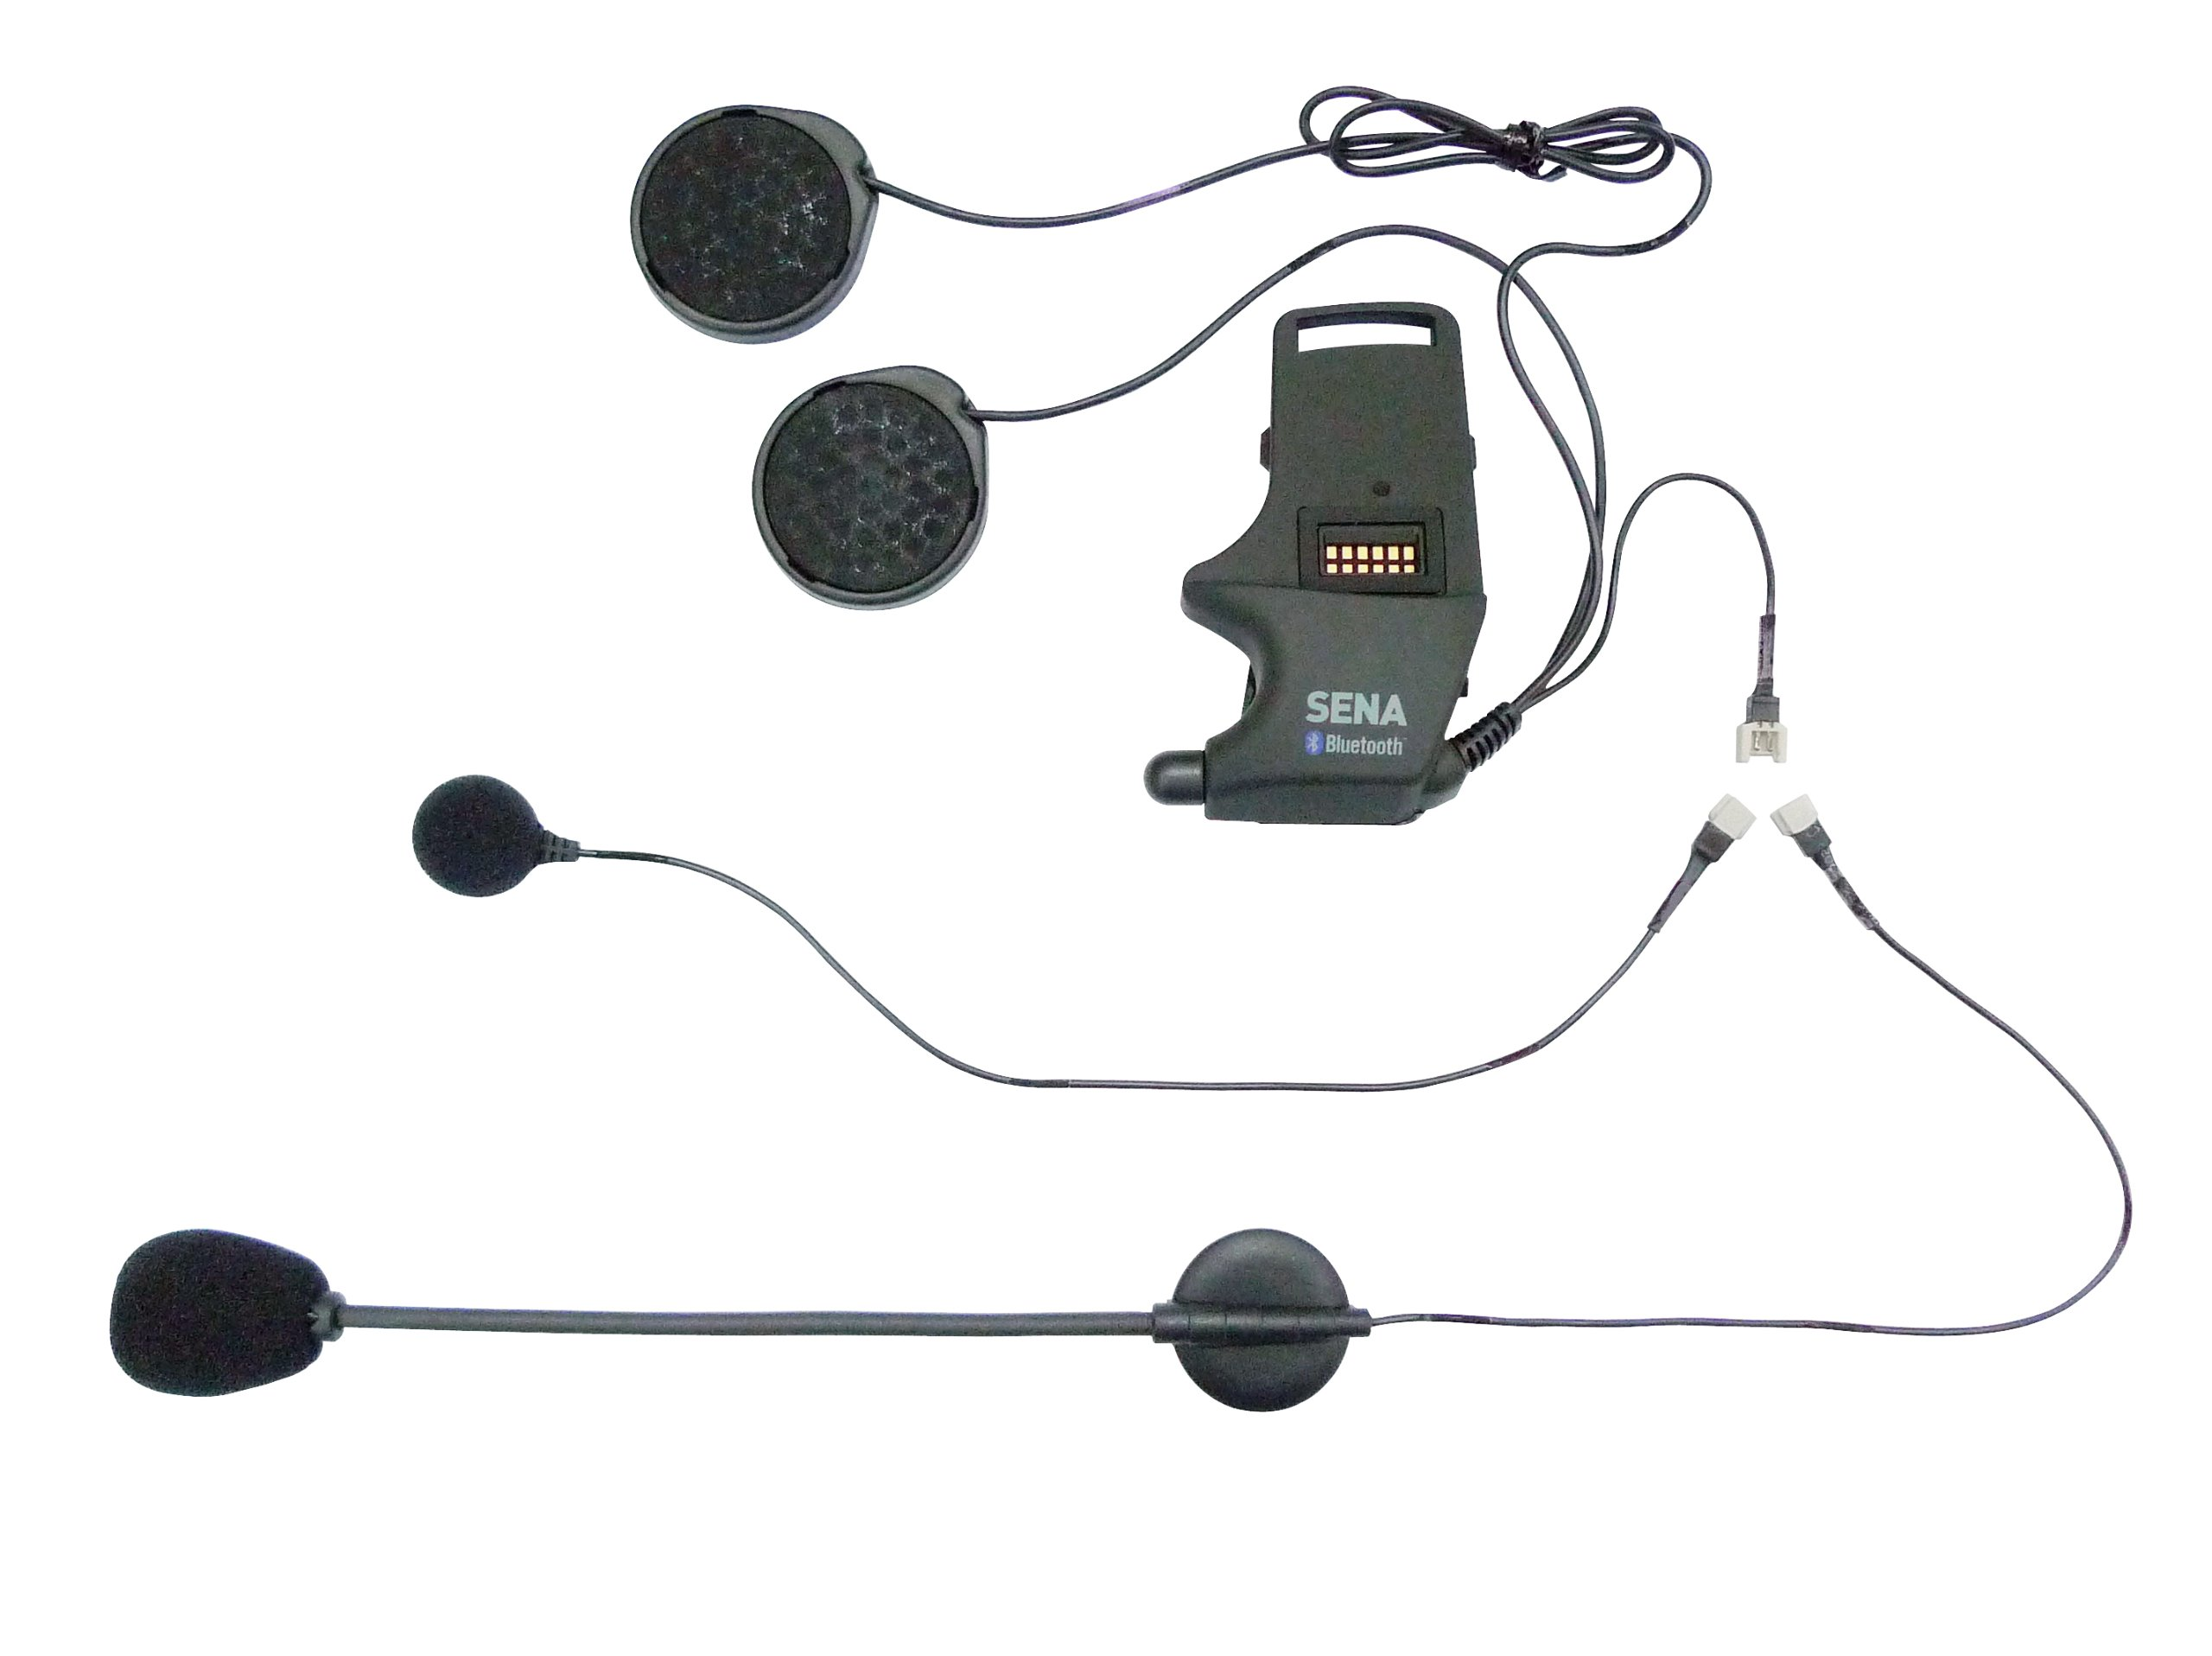 Sena SMH-A0302 Helmet Clamp Kit with Boom and Wired Microphones for SMH10 Bluetooth Headset by Sena